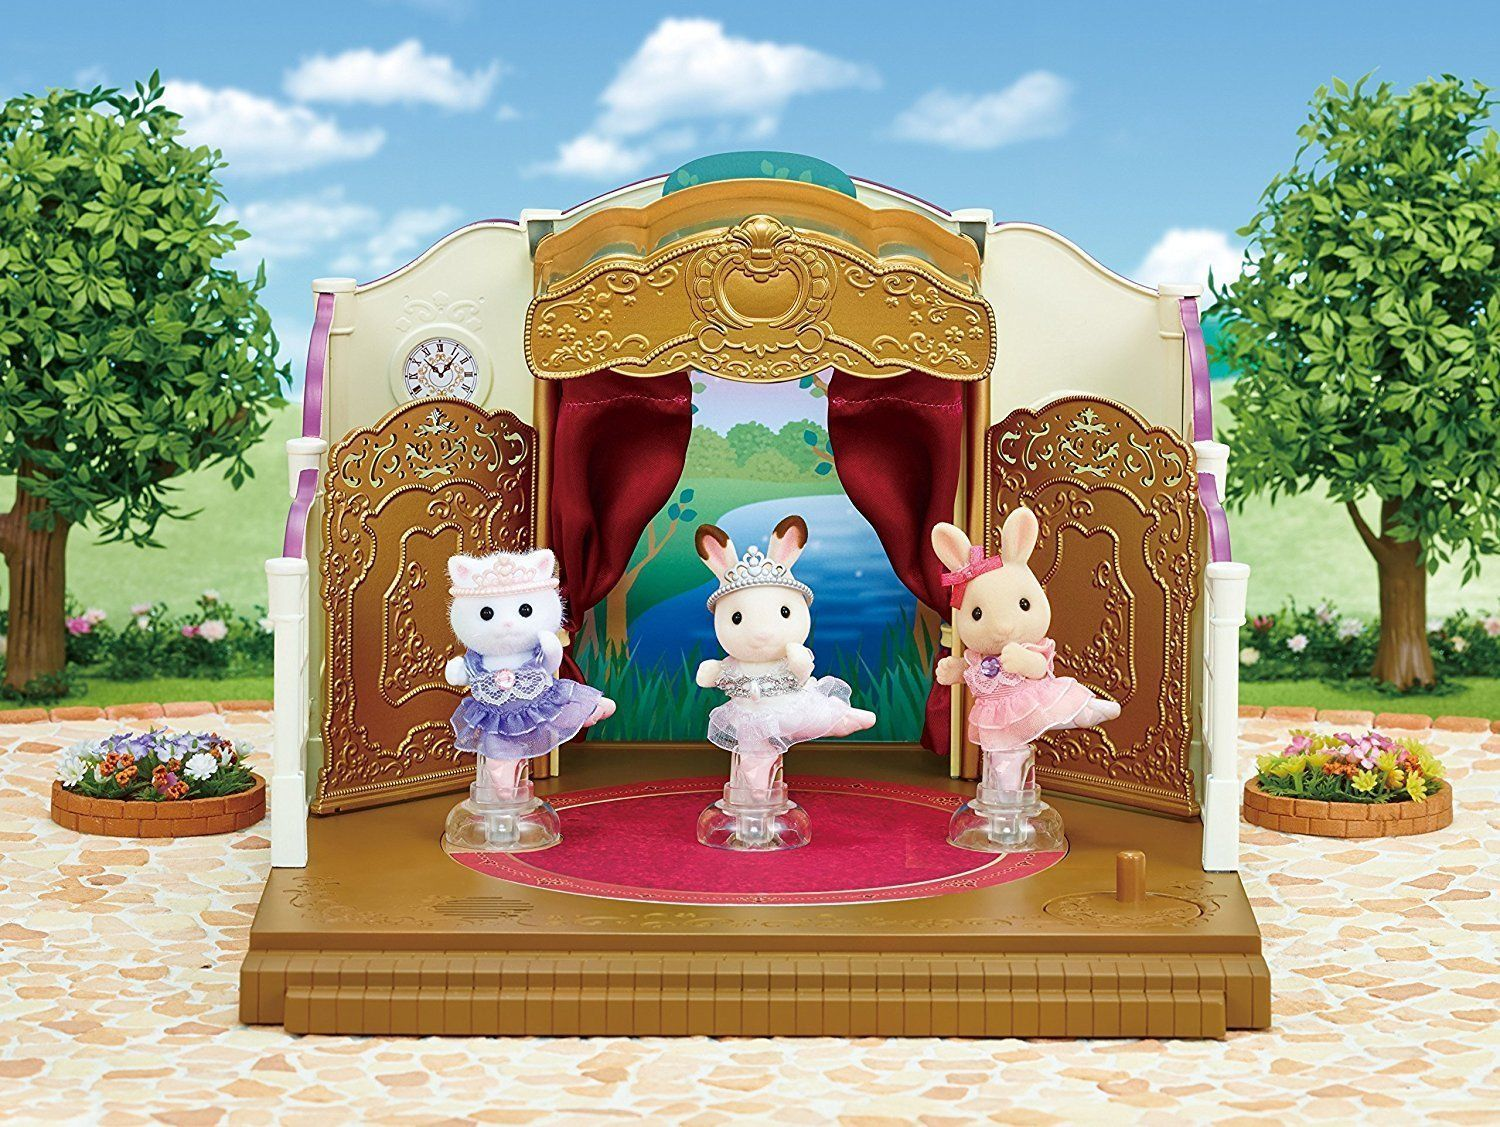 Sylvanian Families 5257 Ballerina Friends available at Little Sprout